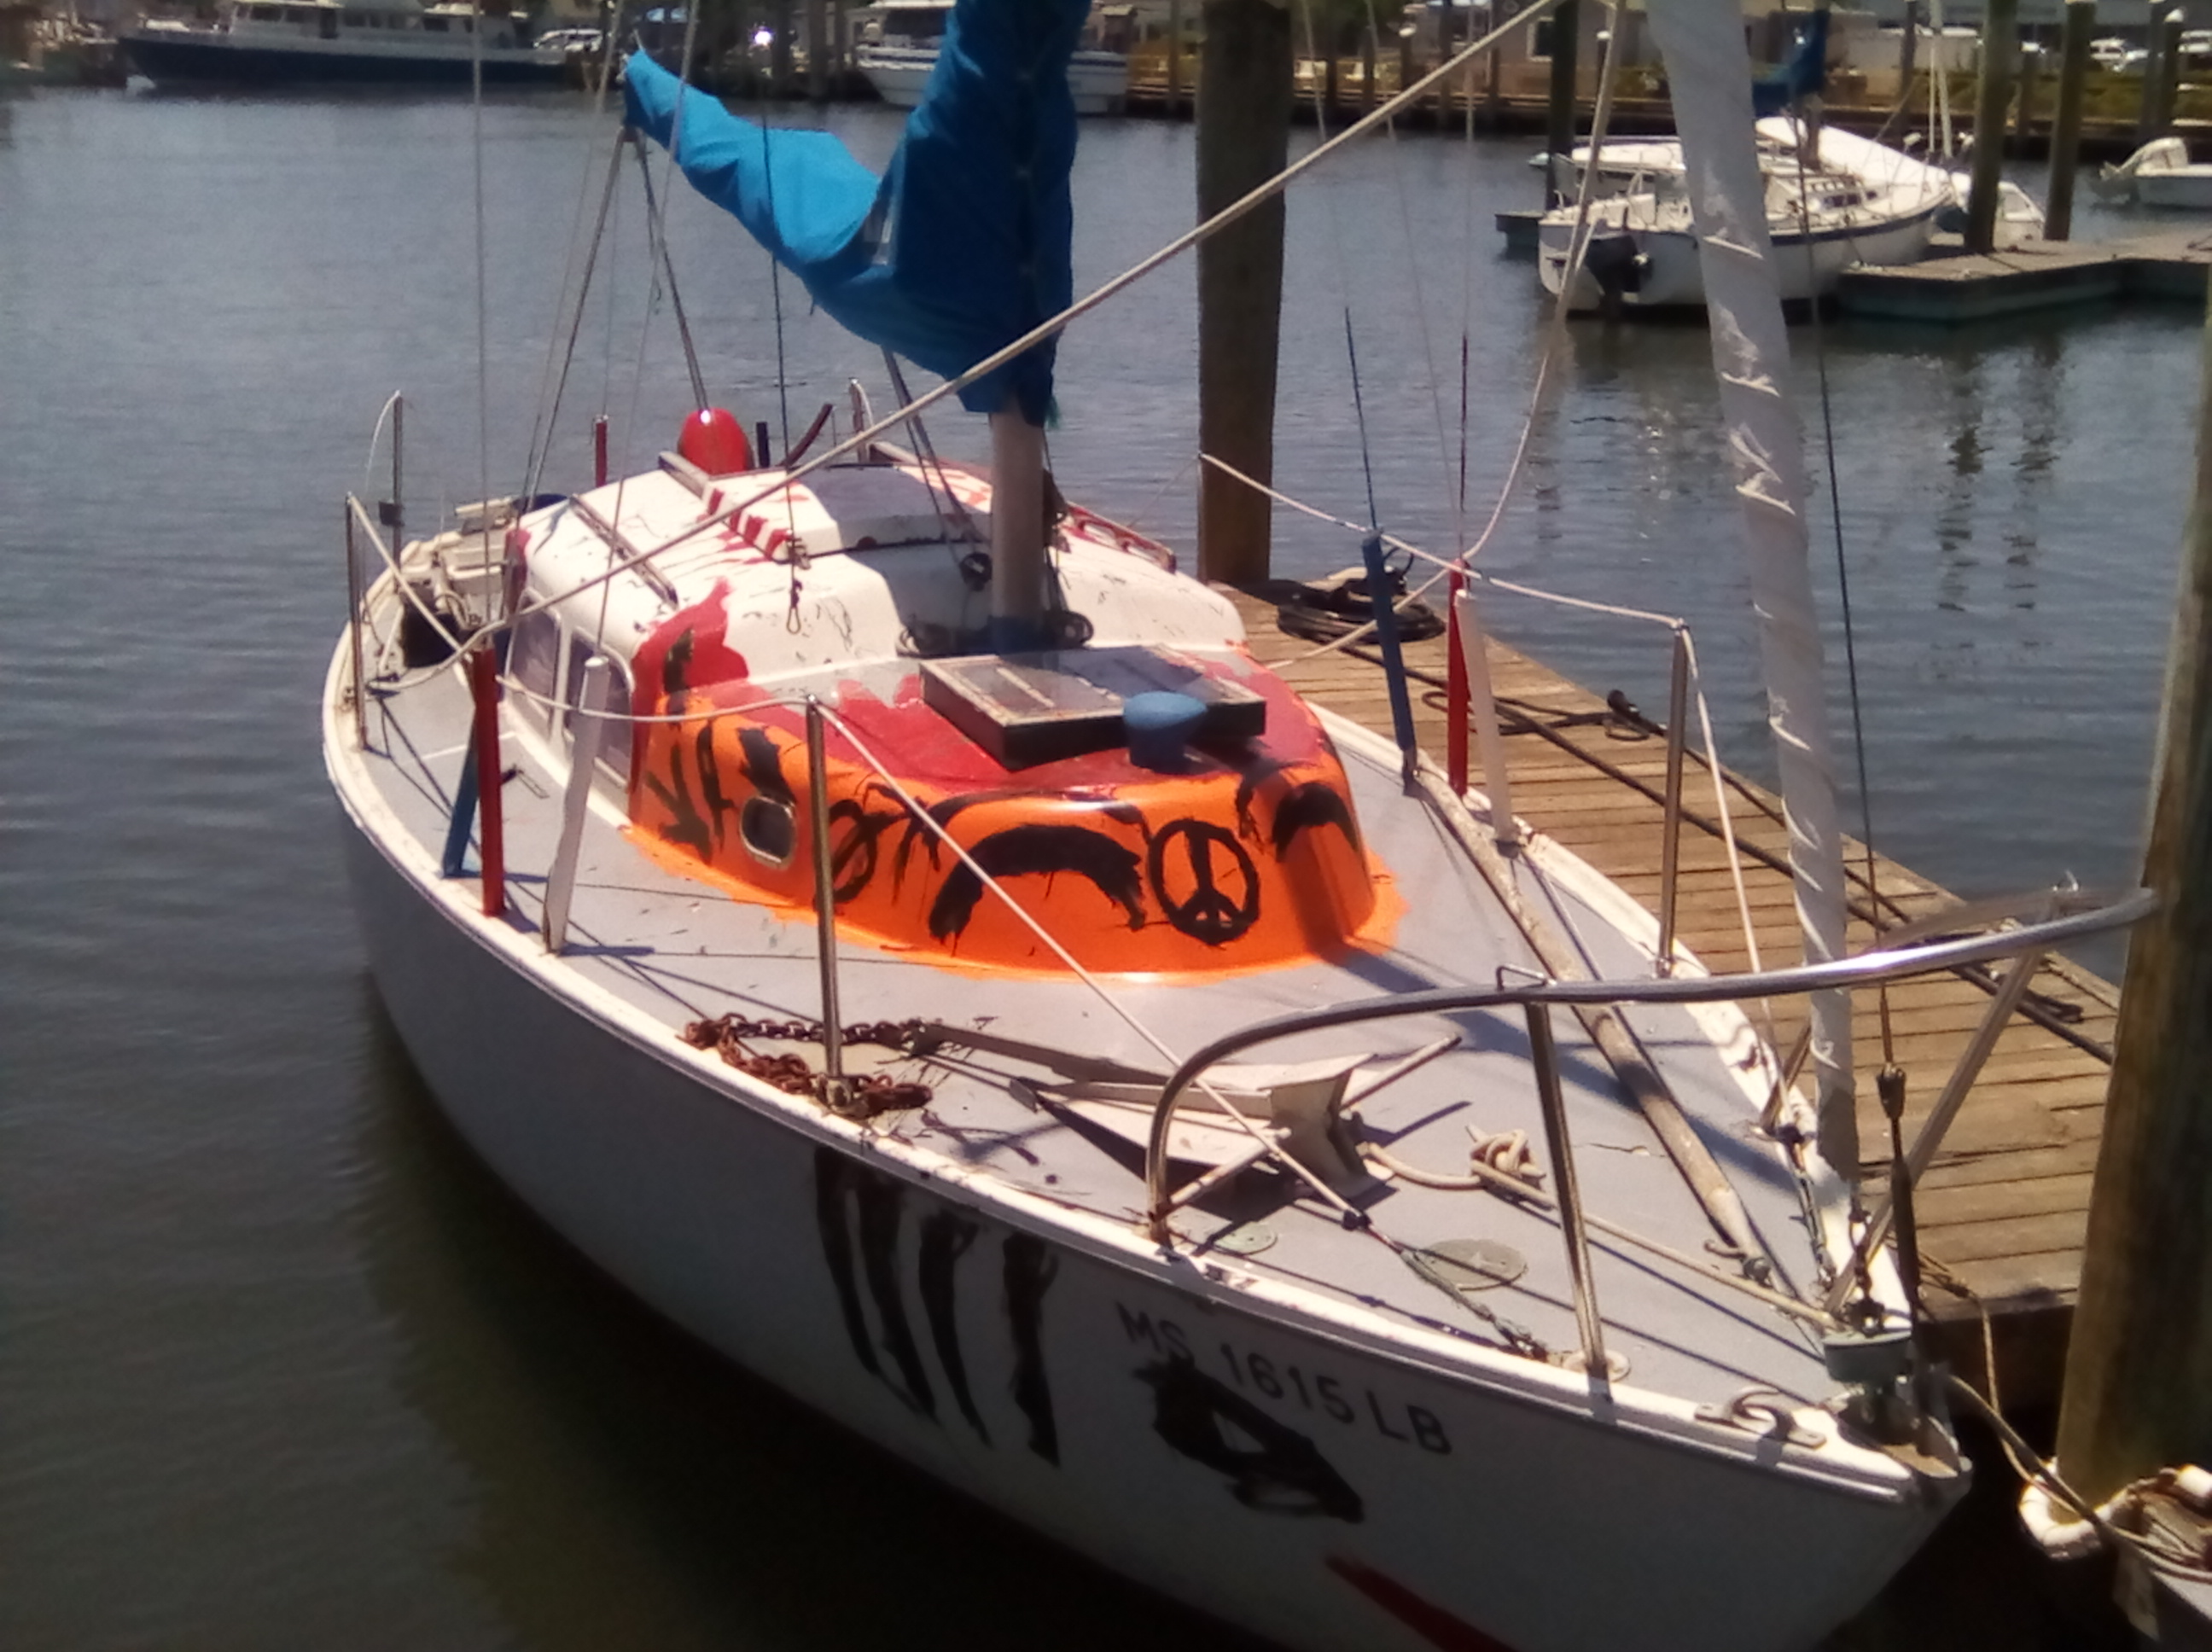 img_20180713_124606-jpg.44442_Here's my boat, the 'happy adventure'_Boat Punk / Sailing_Squat the Planet_10:01 AM